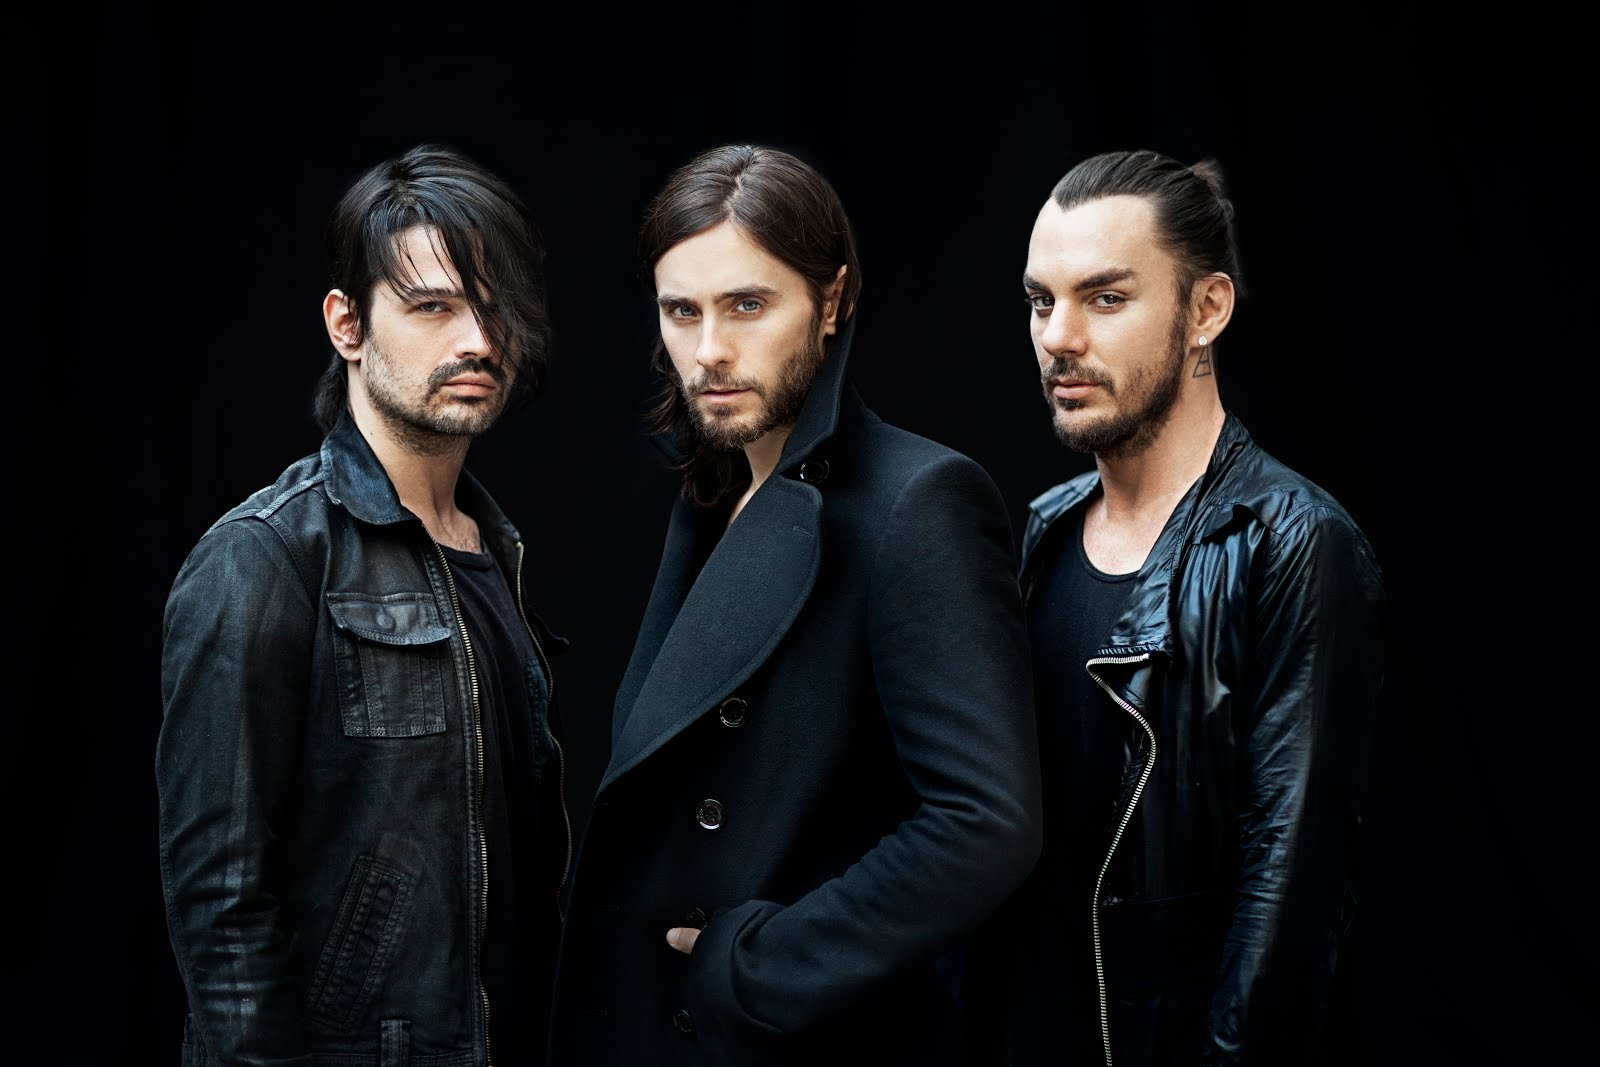 THIRTY SECONDS TO MARS reschedule tour to March 2014